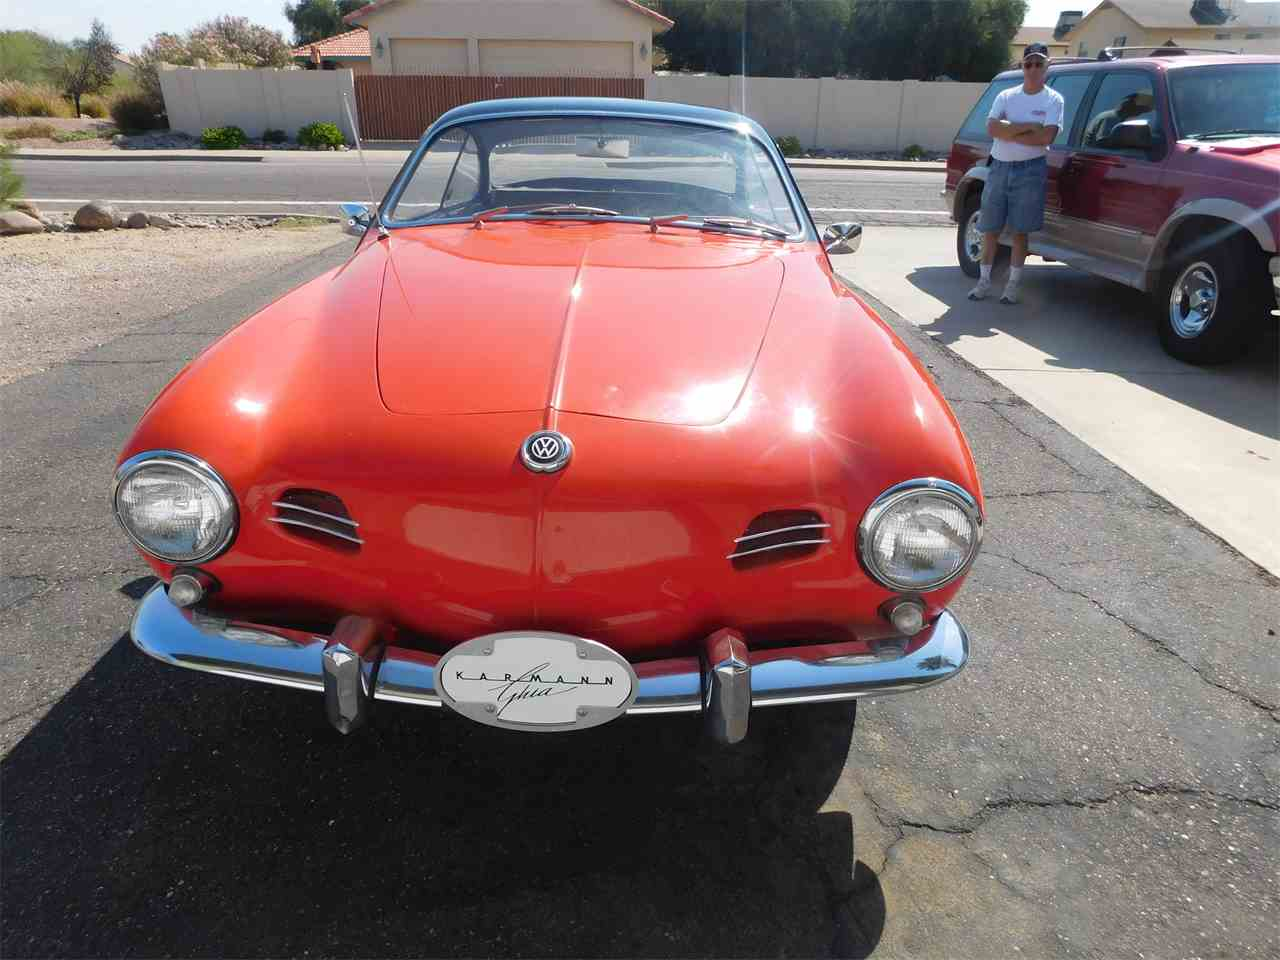 Large Picture of Classic 1956 Karmann Ghia located in Arizona - $33,000.00 Offered by Classic Car Pal - LVBF